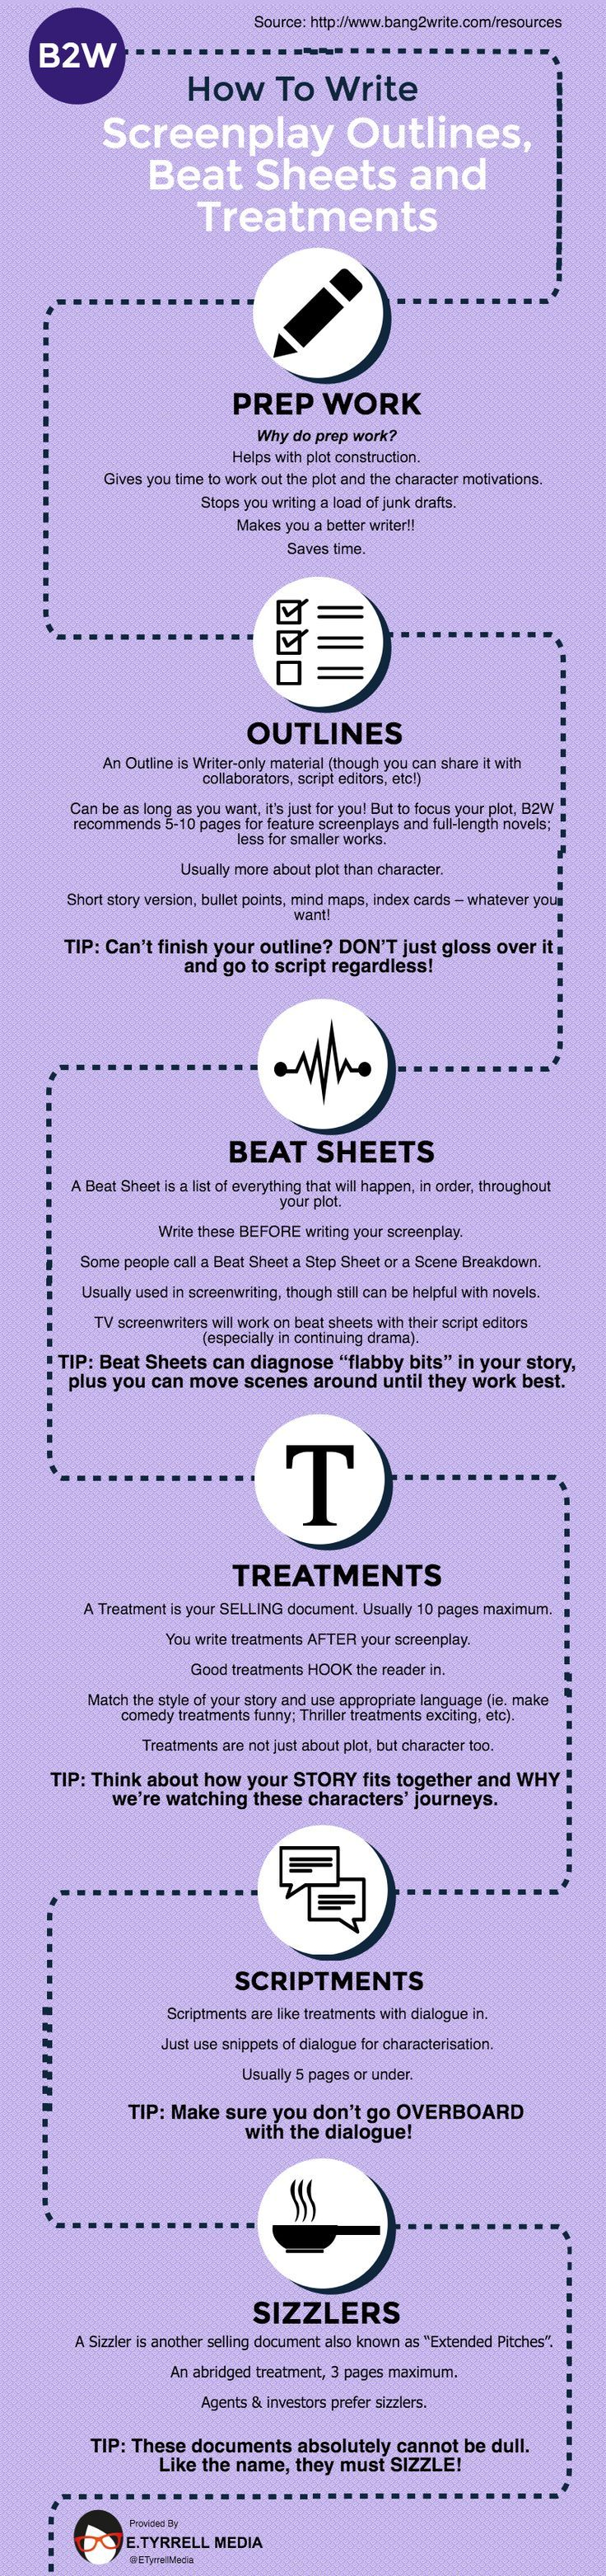 How To Write Screenplay Outlines, Beat Sheets And Treatments